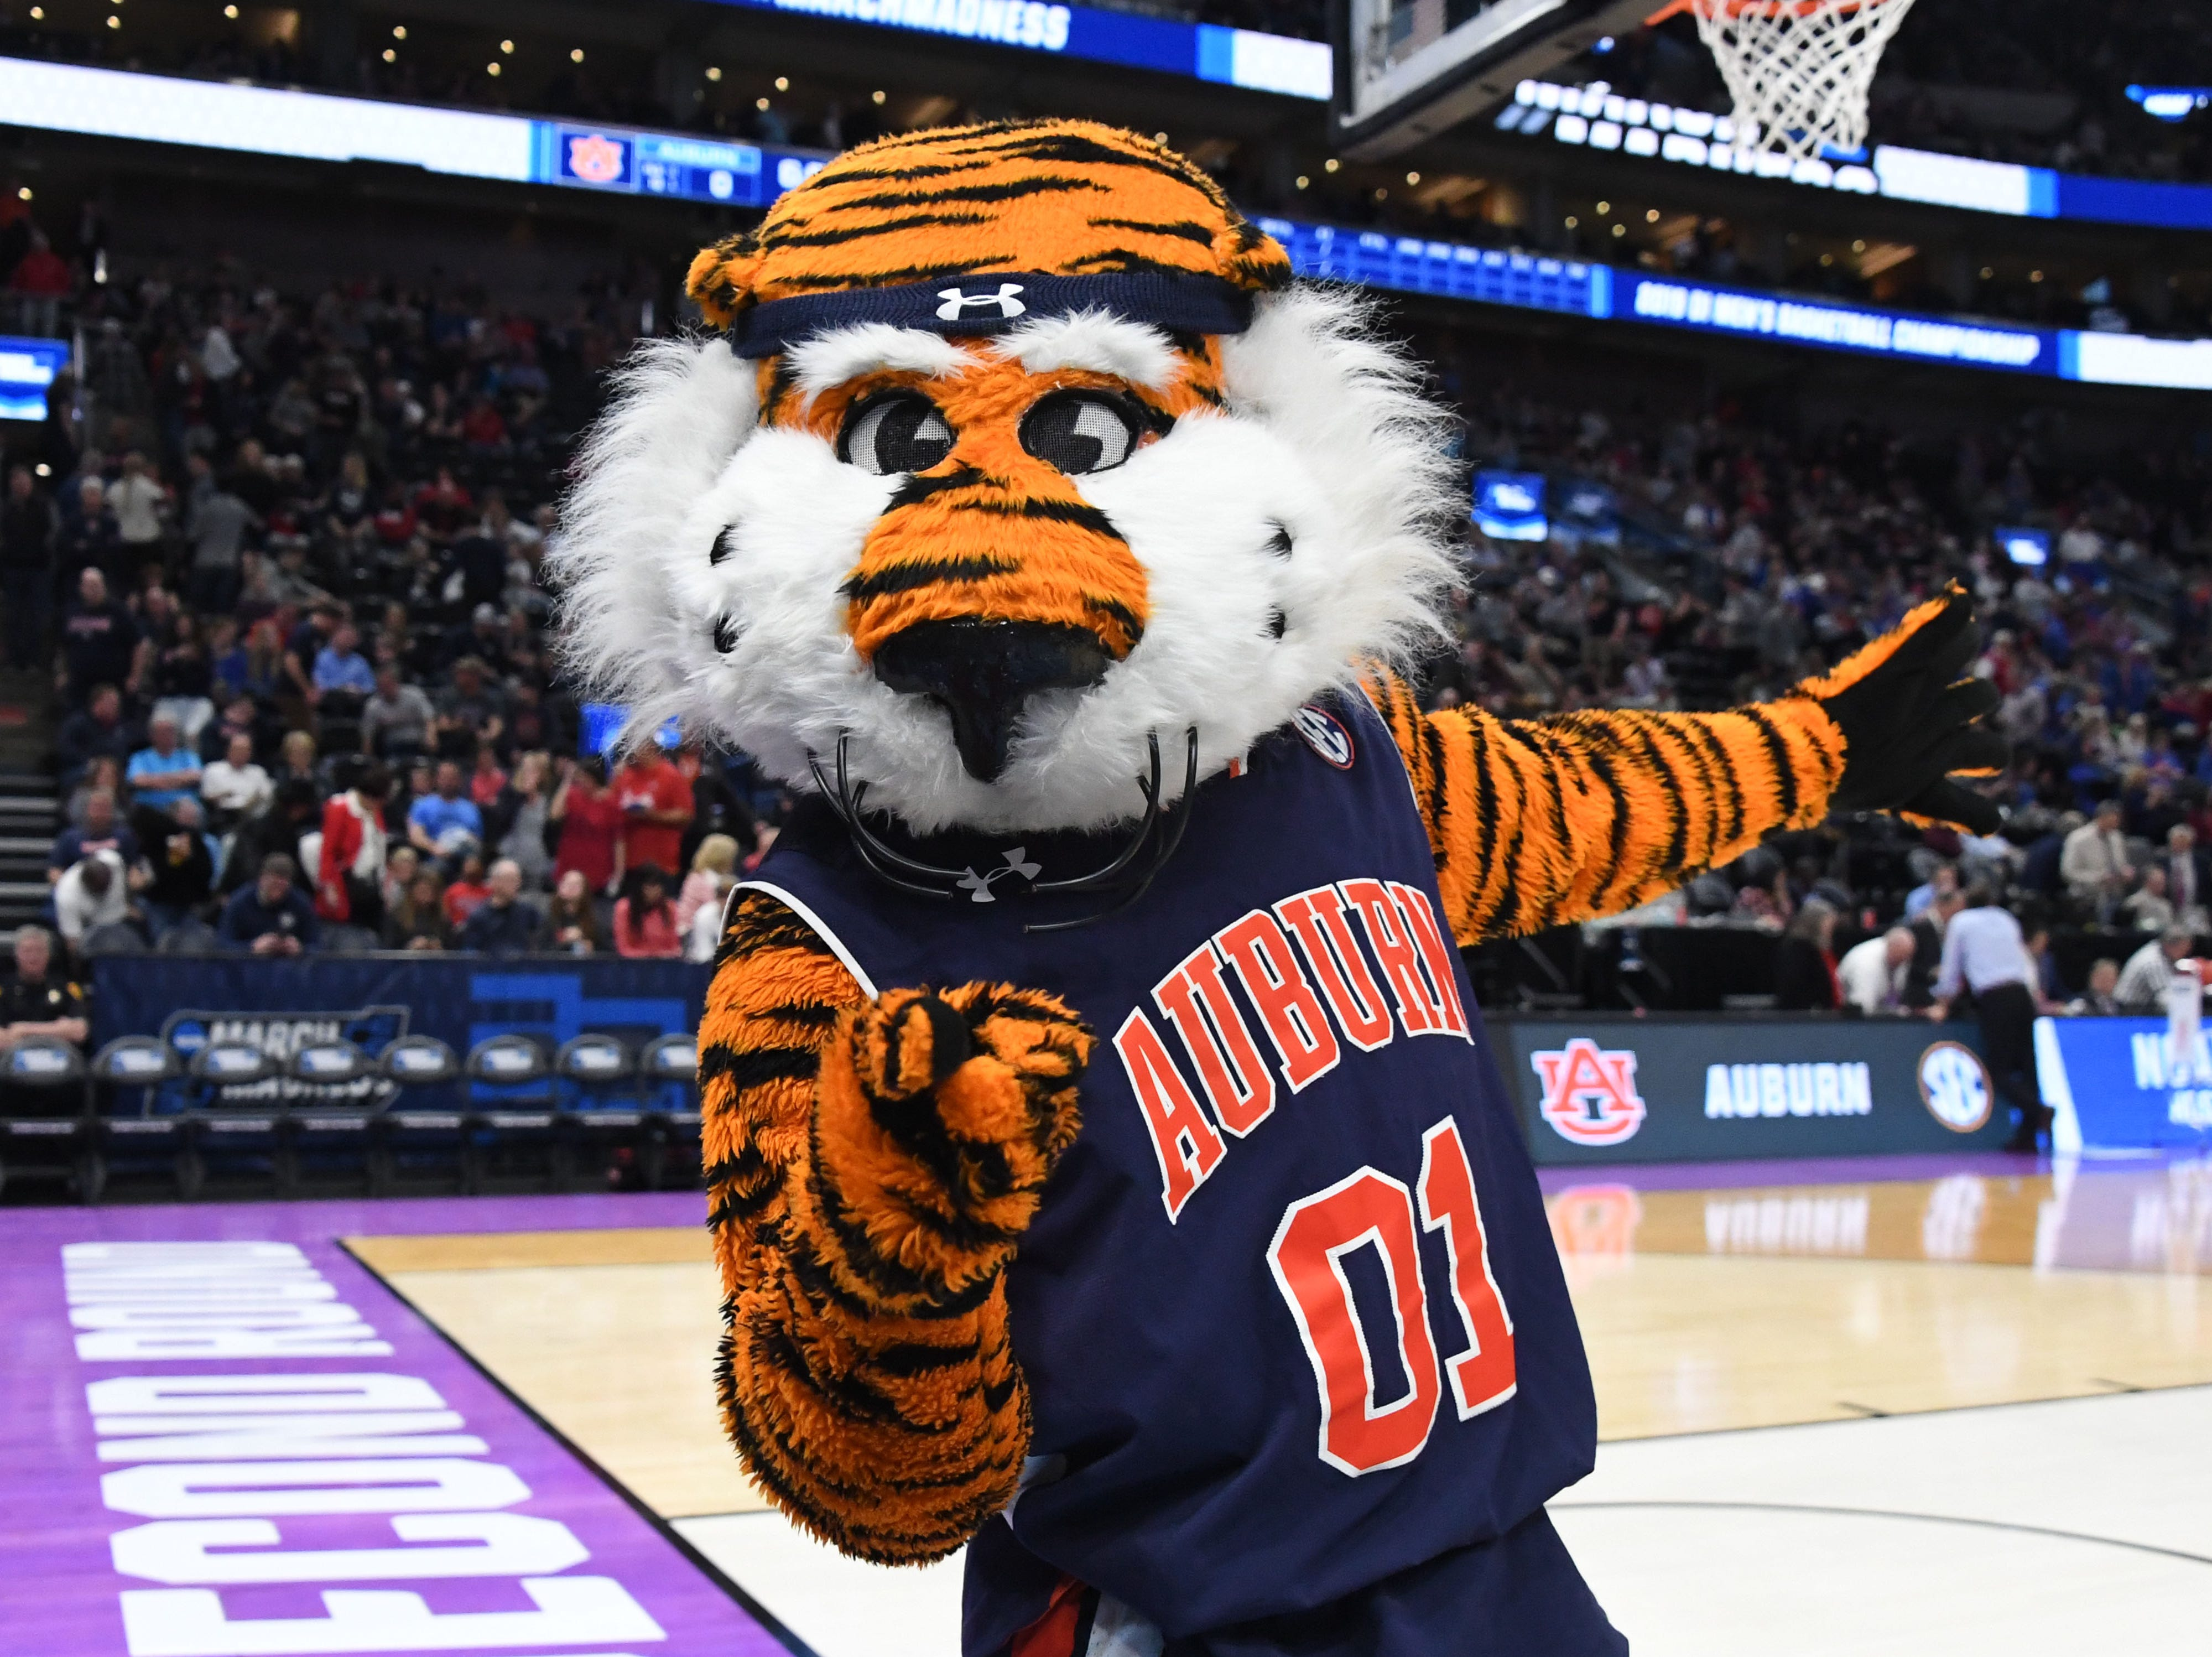 Round of 32: Auburn Tigers mascot Aubie performs before the game against the Kansas Jayhawks.